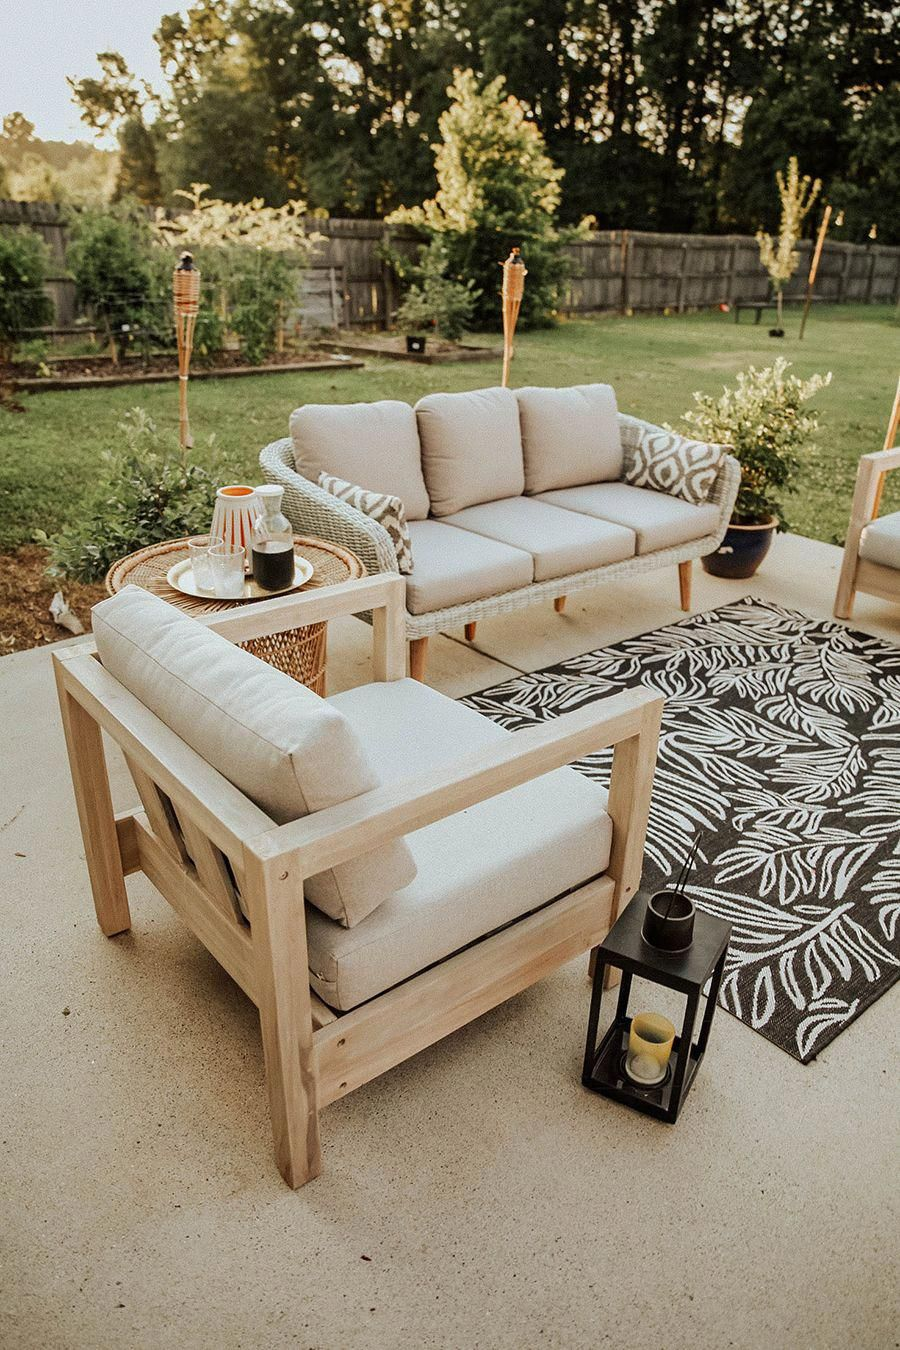 Download Wallpaper Used Patio Furniture Los Angeles